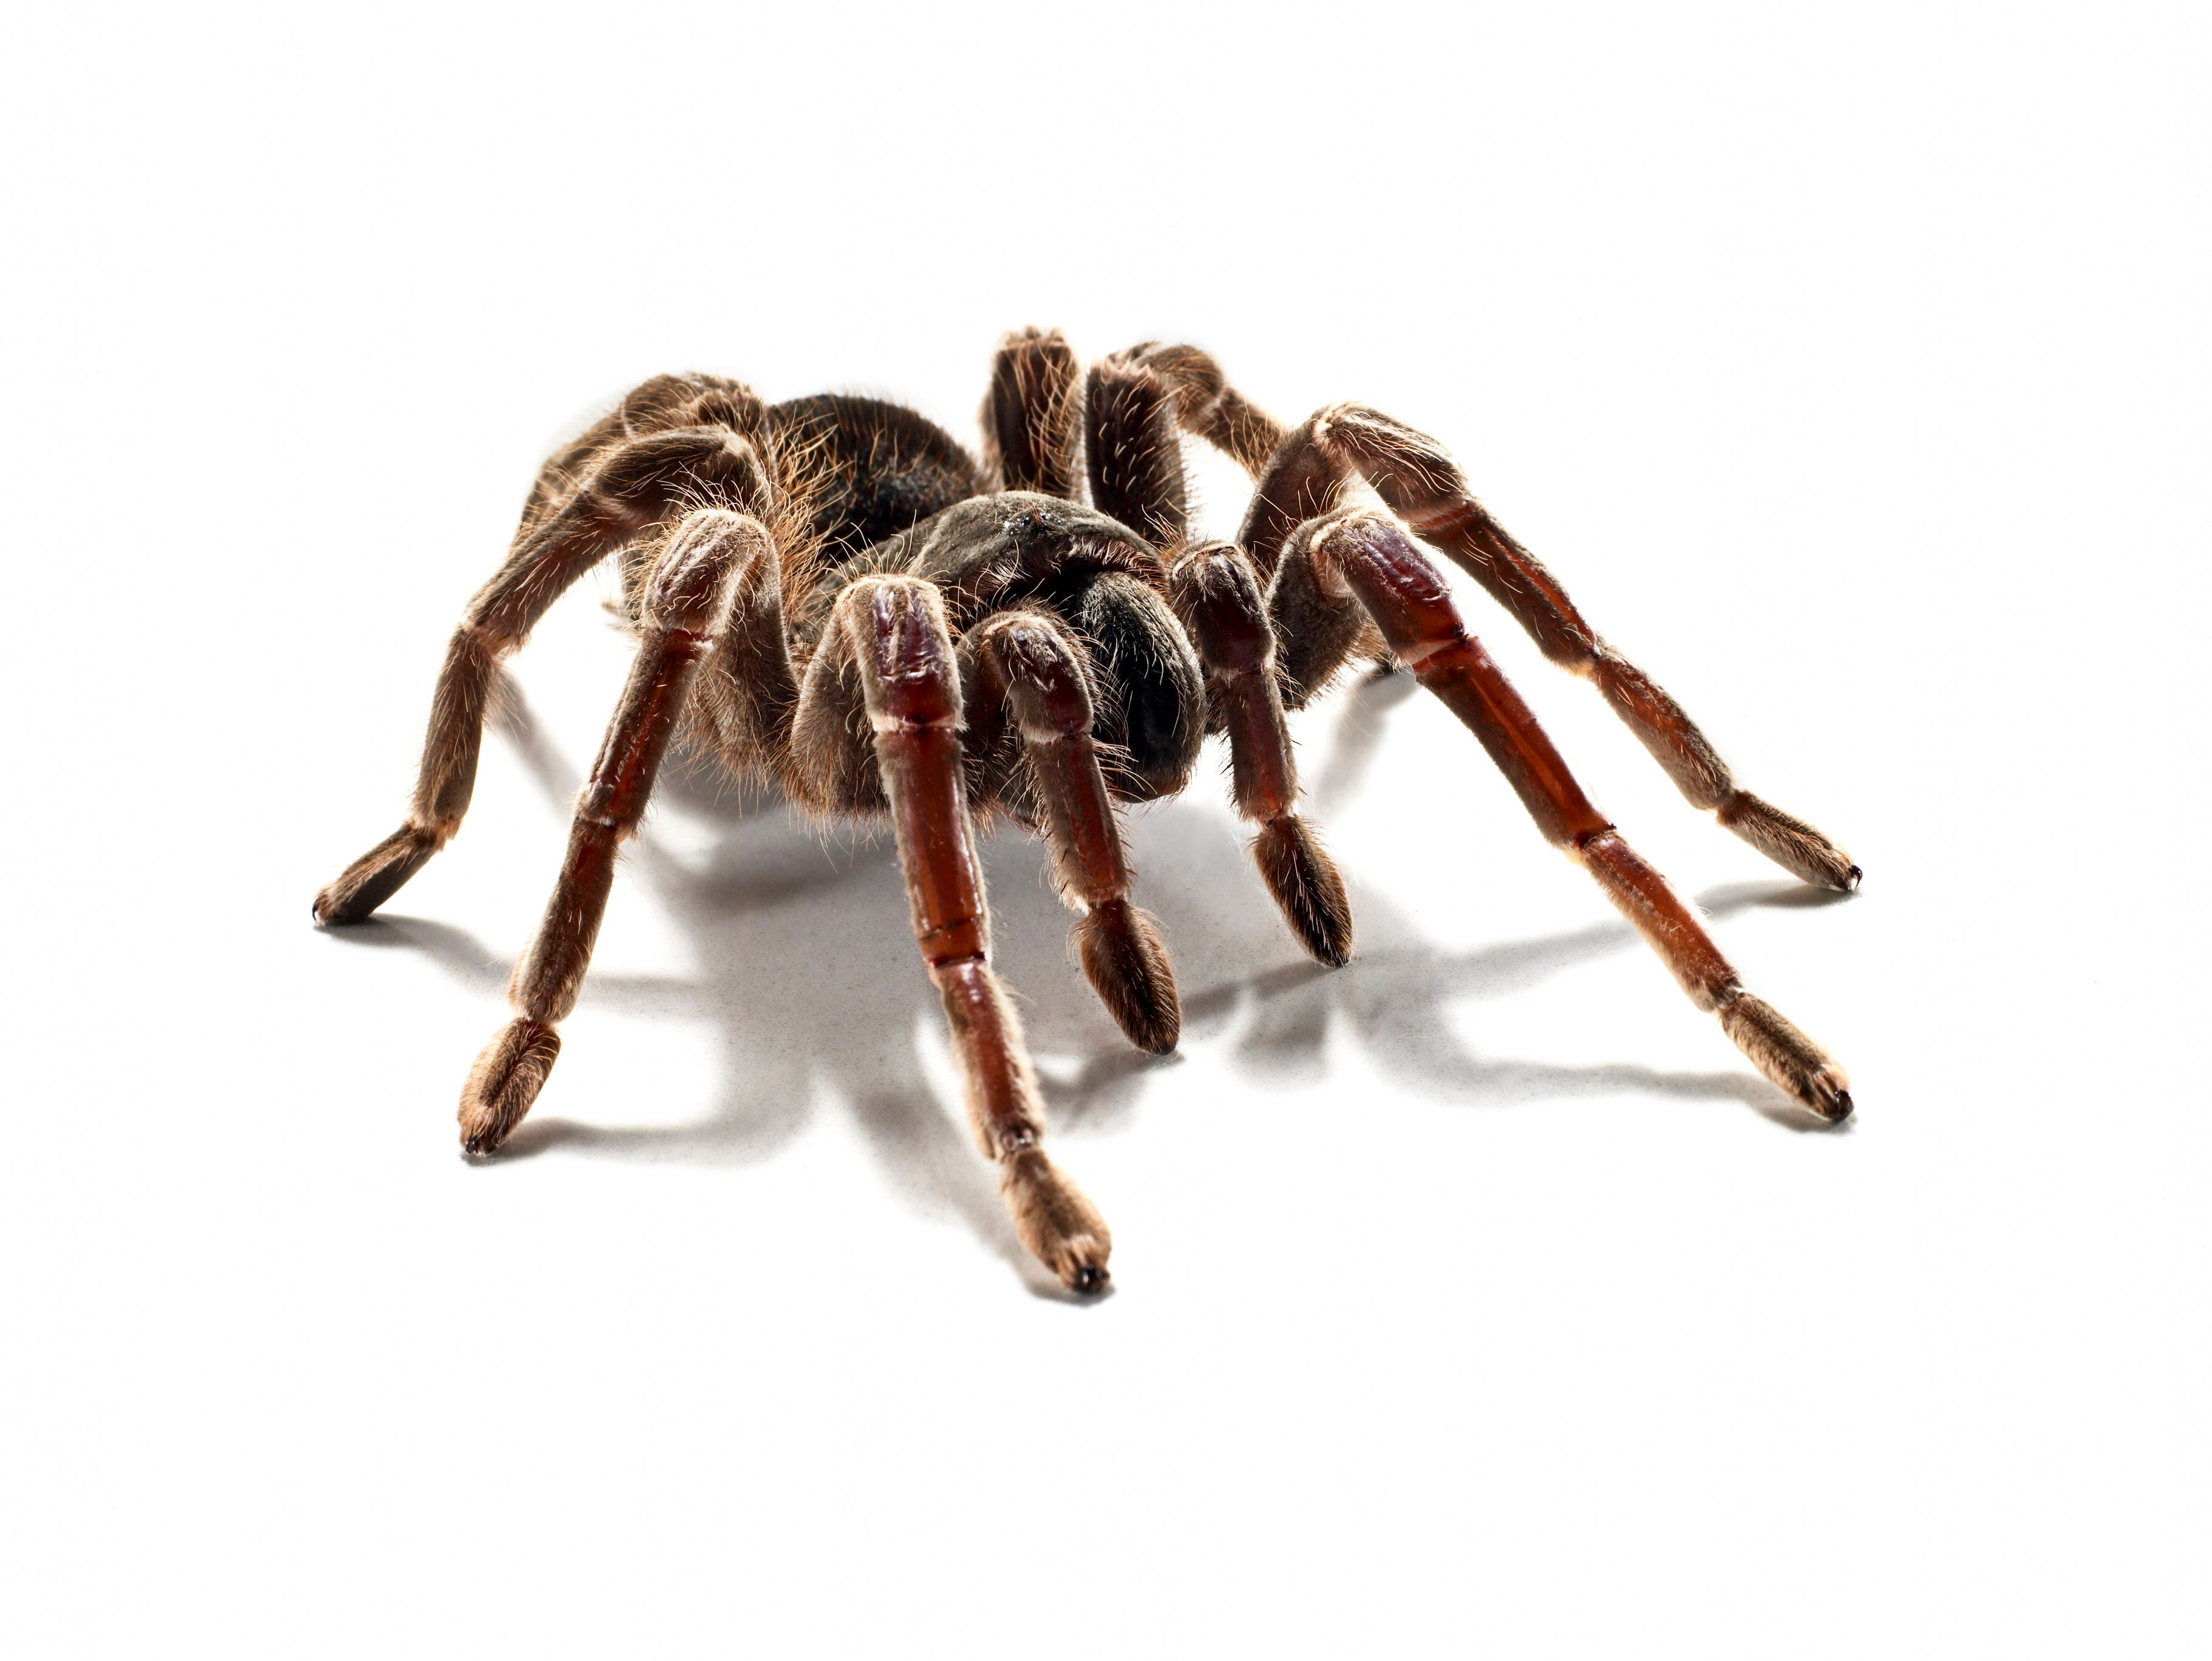 portrait of a hairy tarantula in the studio